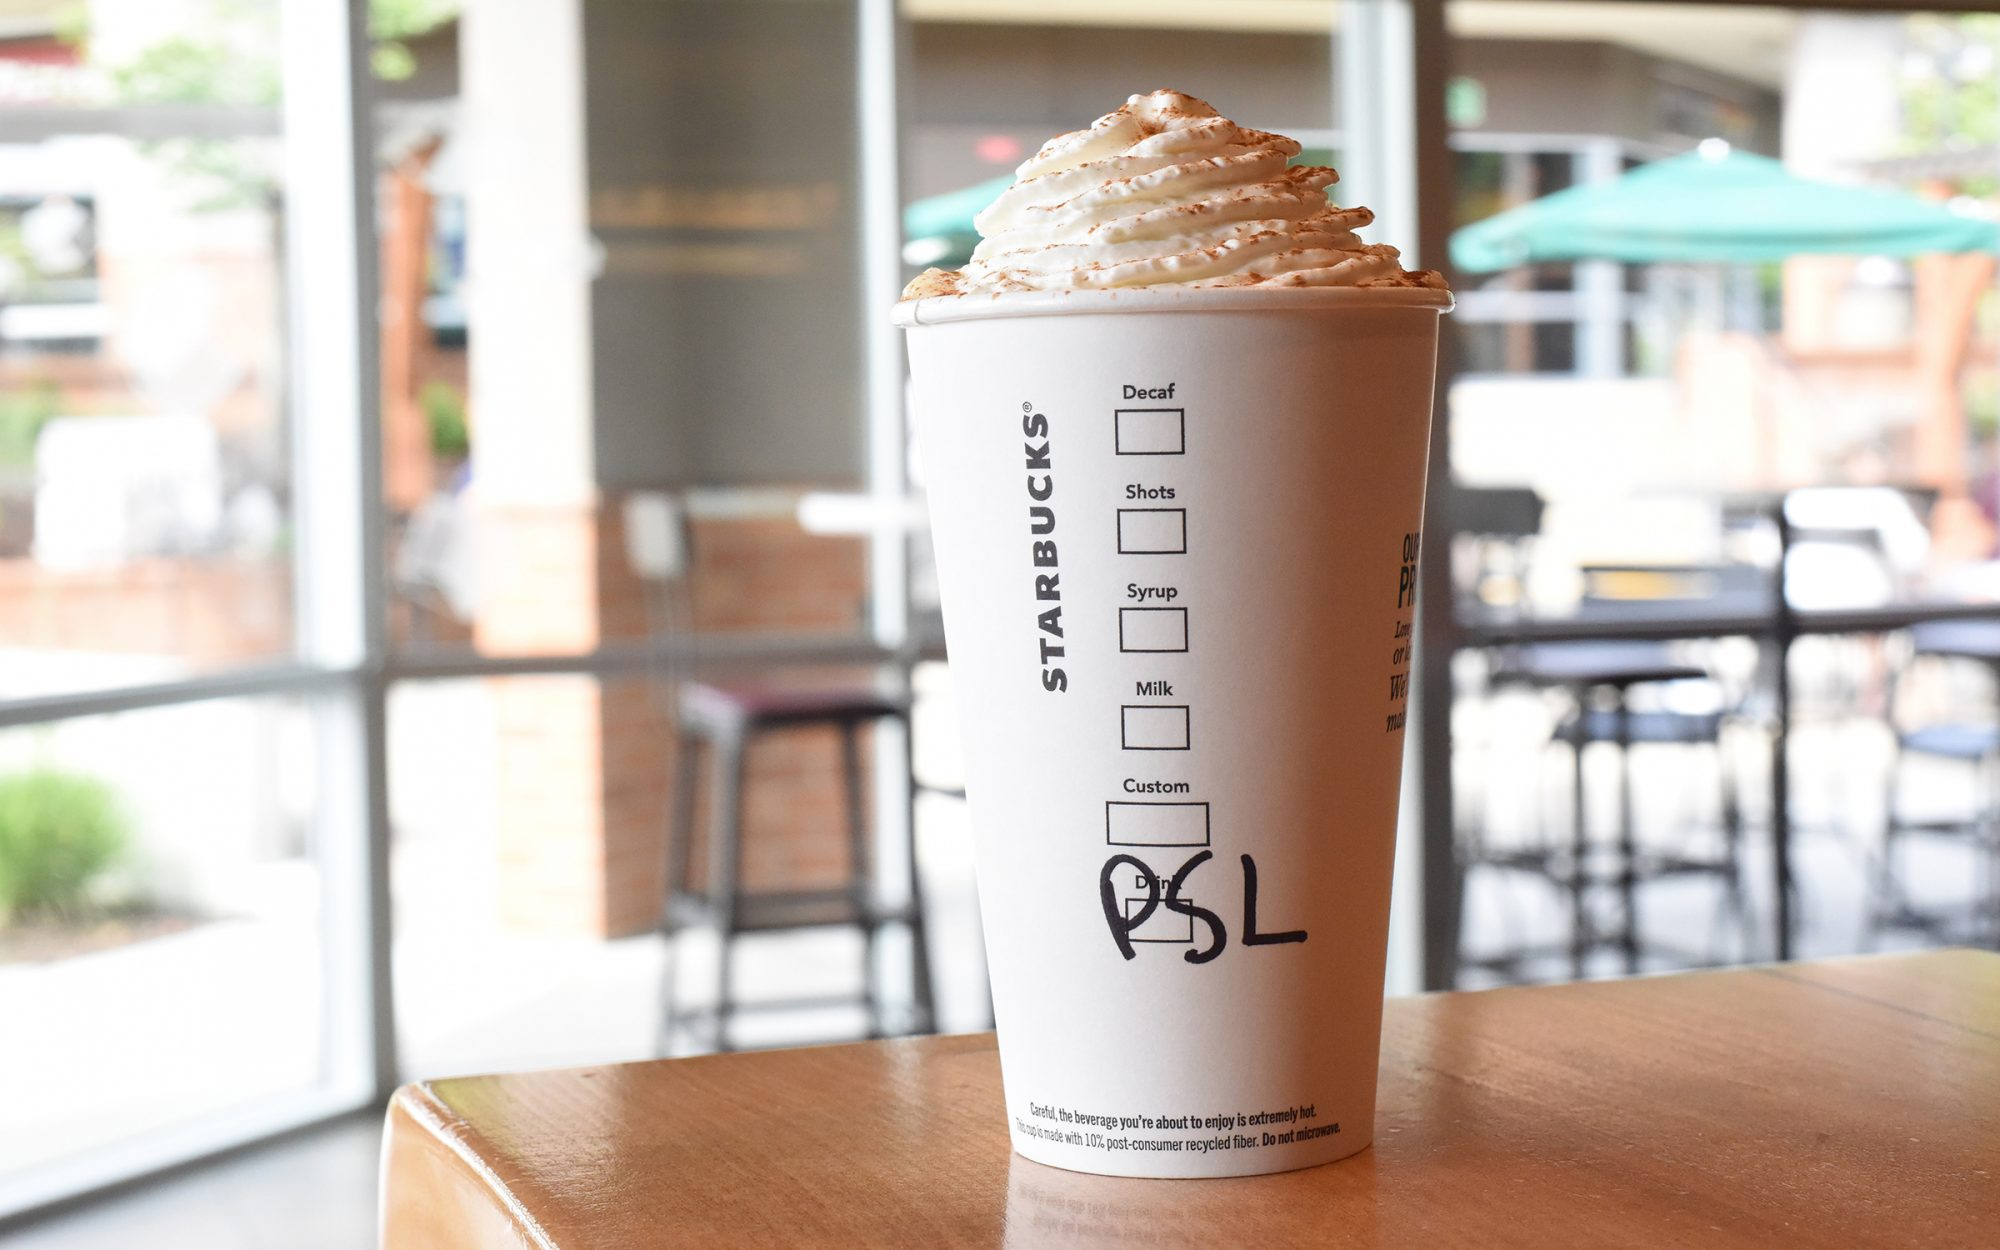 Starbucks Pumpkin Spice Latte Price in 17 Cities